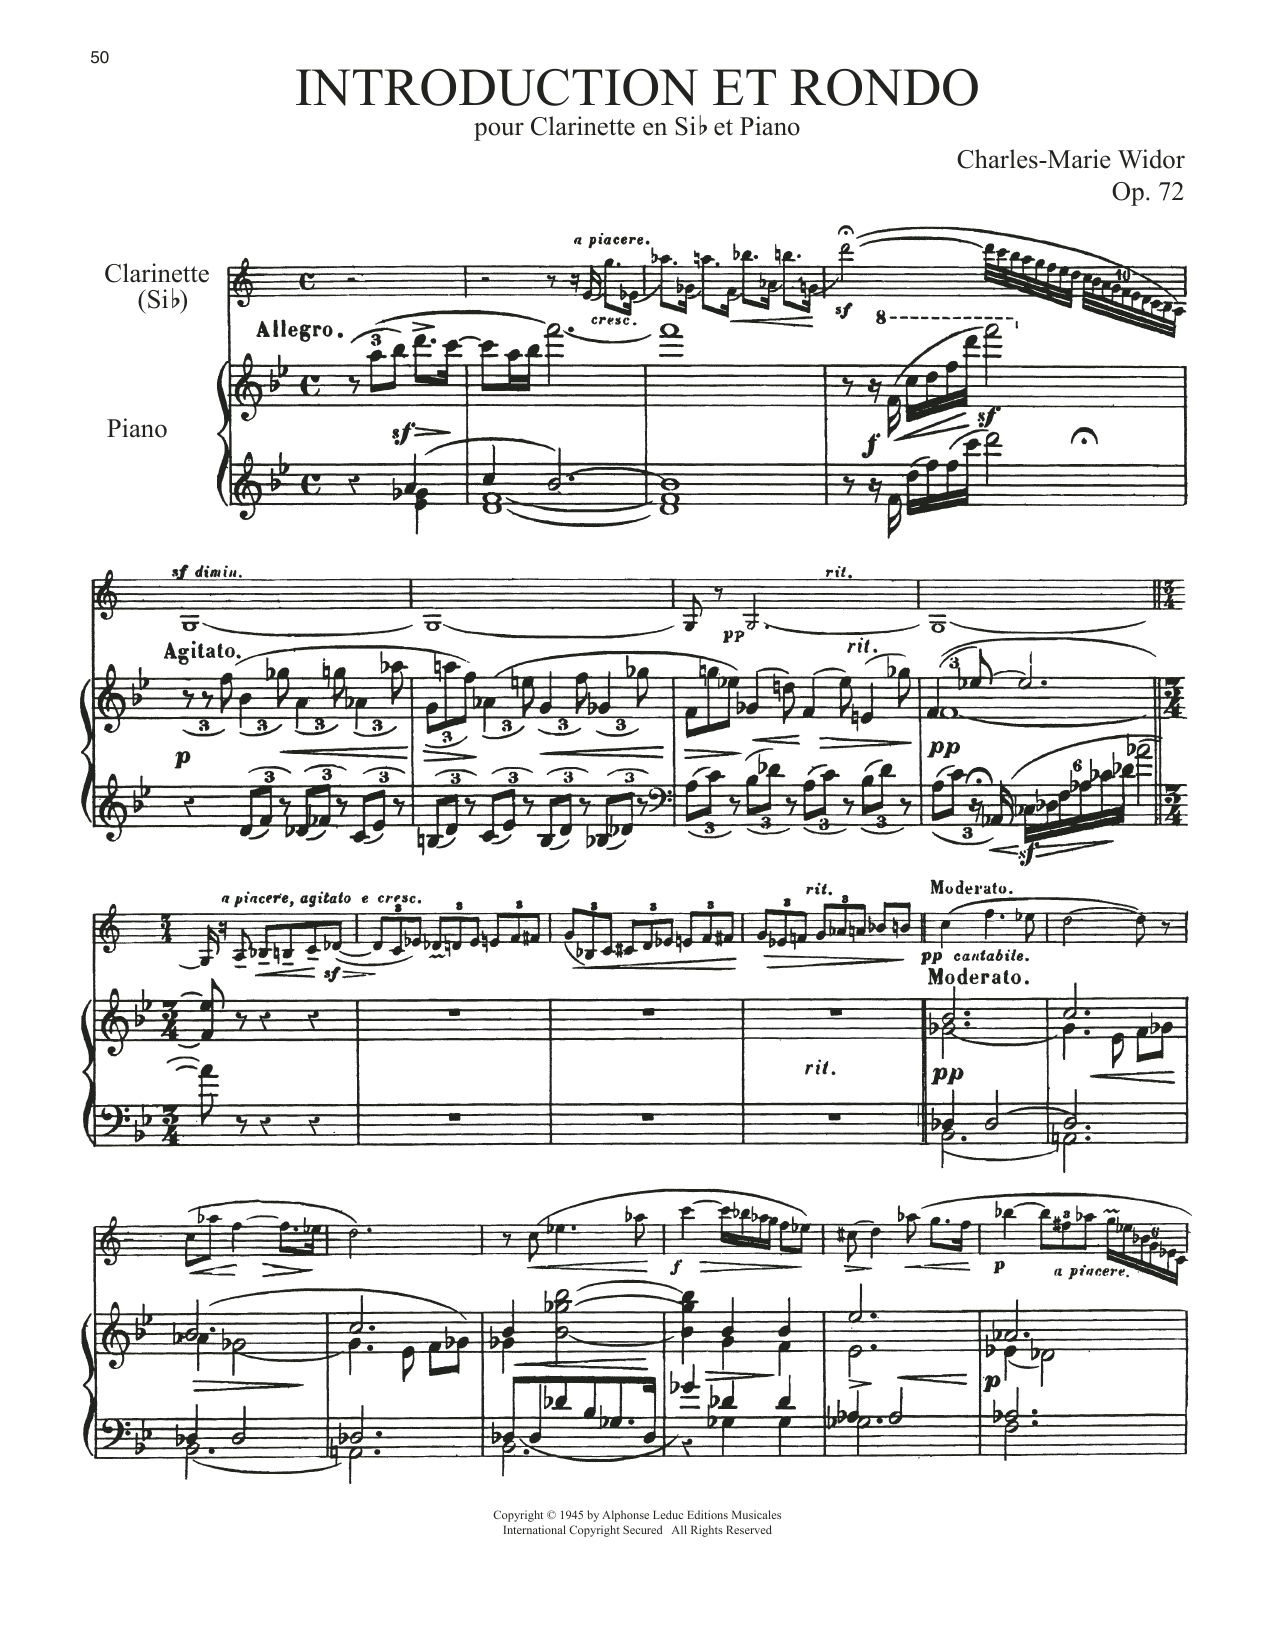 Charles-Marie Widor Introduction Et Rondo sheet music notes and chords. Download Printable PDF.